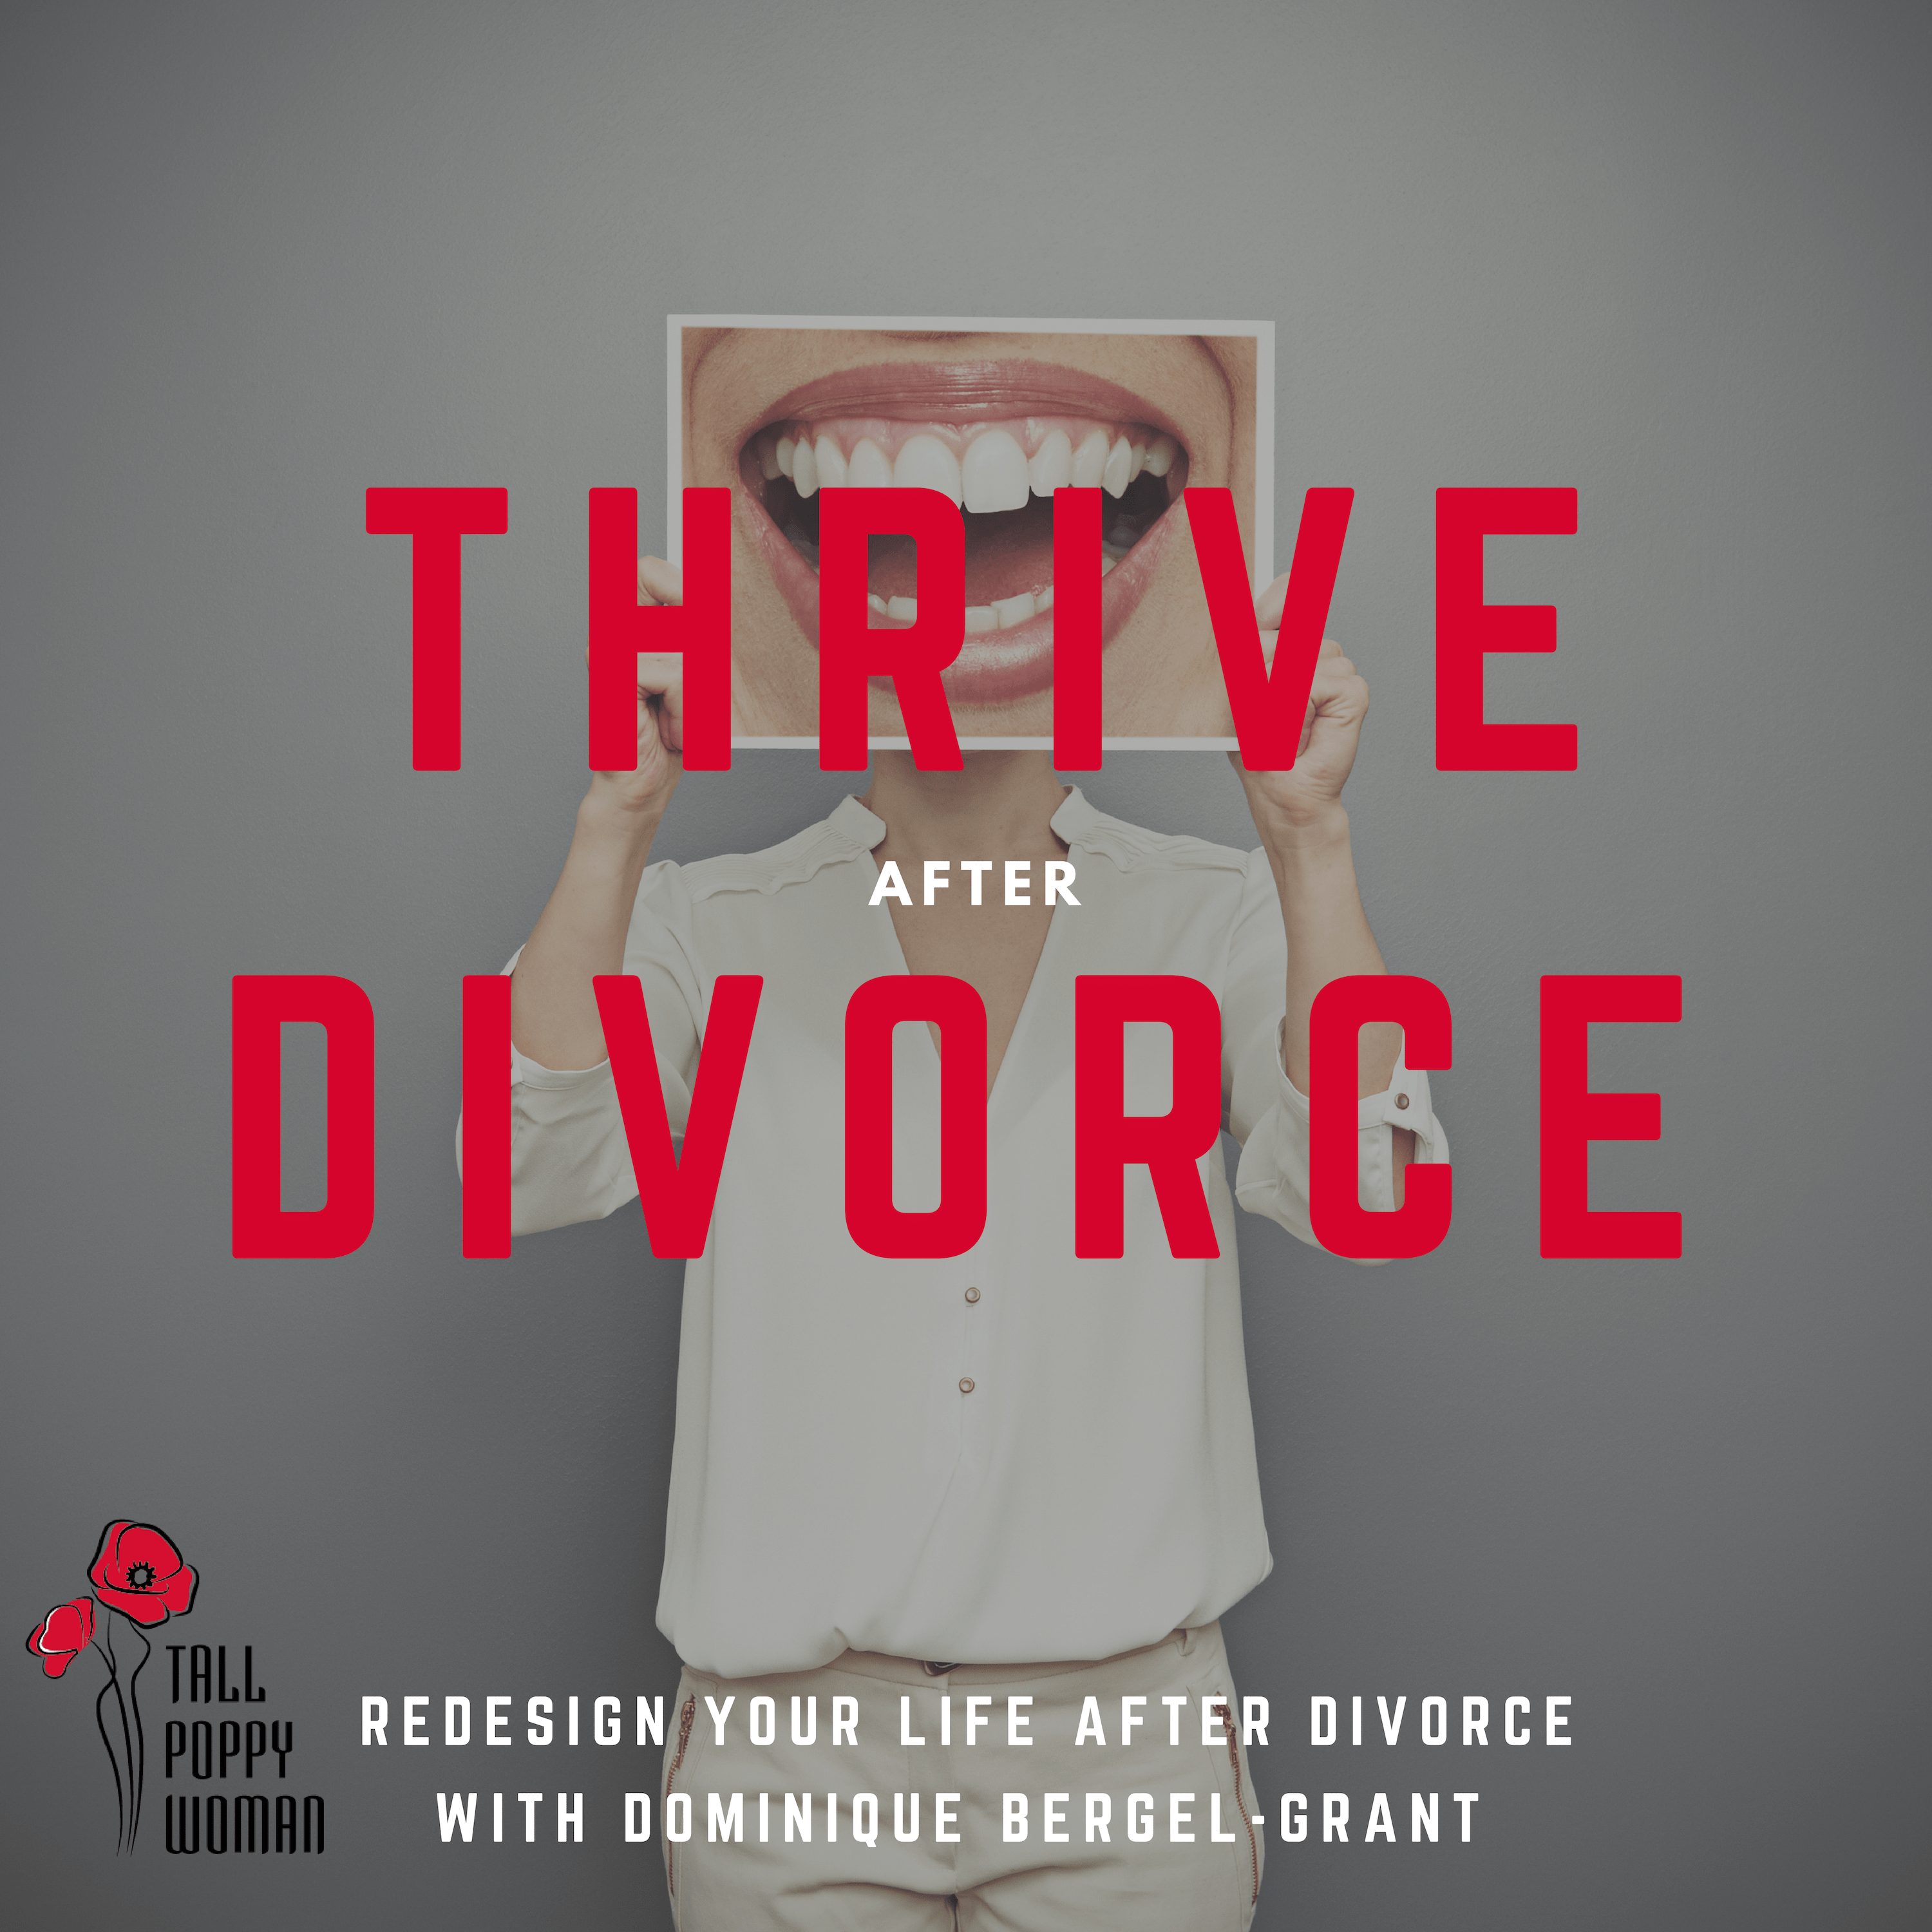 Thrive After Divorce By Tall Poppy Woman: Helping women redesign their life after separation and divorce show art